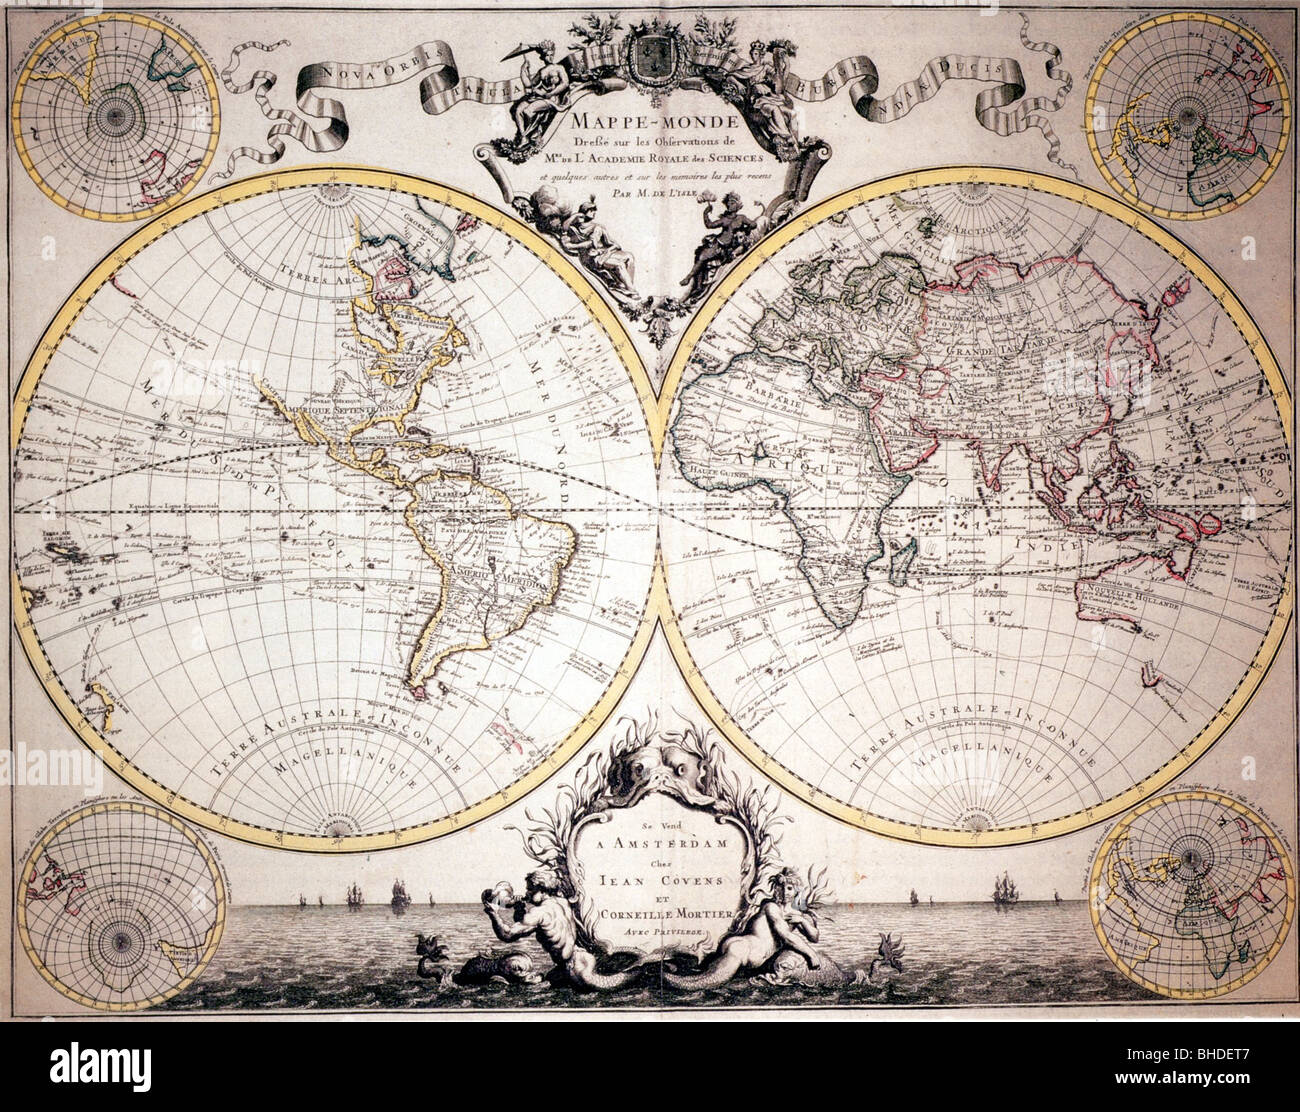 Cartography world maps map of guillaume delisle atlas nouveau cartography world maps map of guillaume delisle atlas nouveau amsterdam 1730 europe africa asia america australia 1 gumiabroncs Image collections